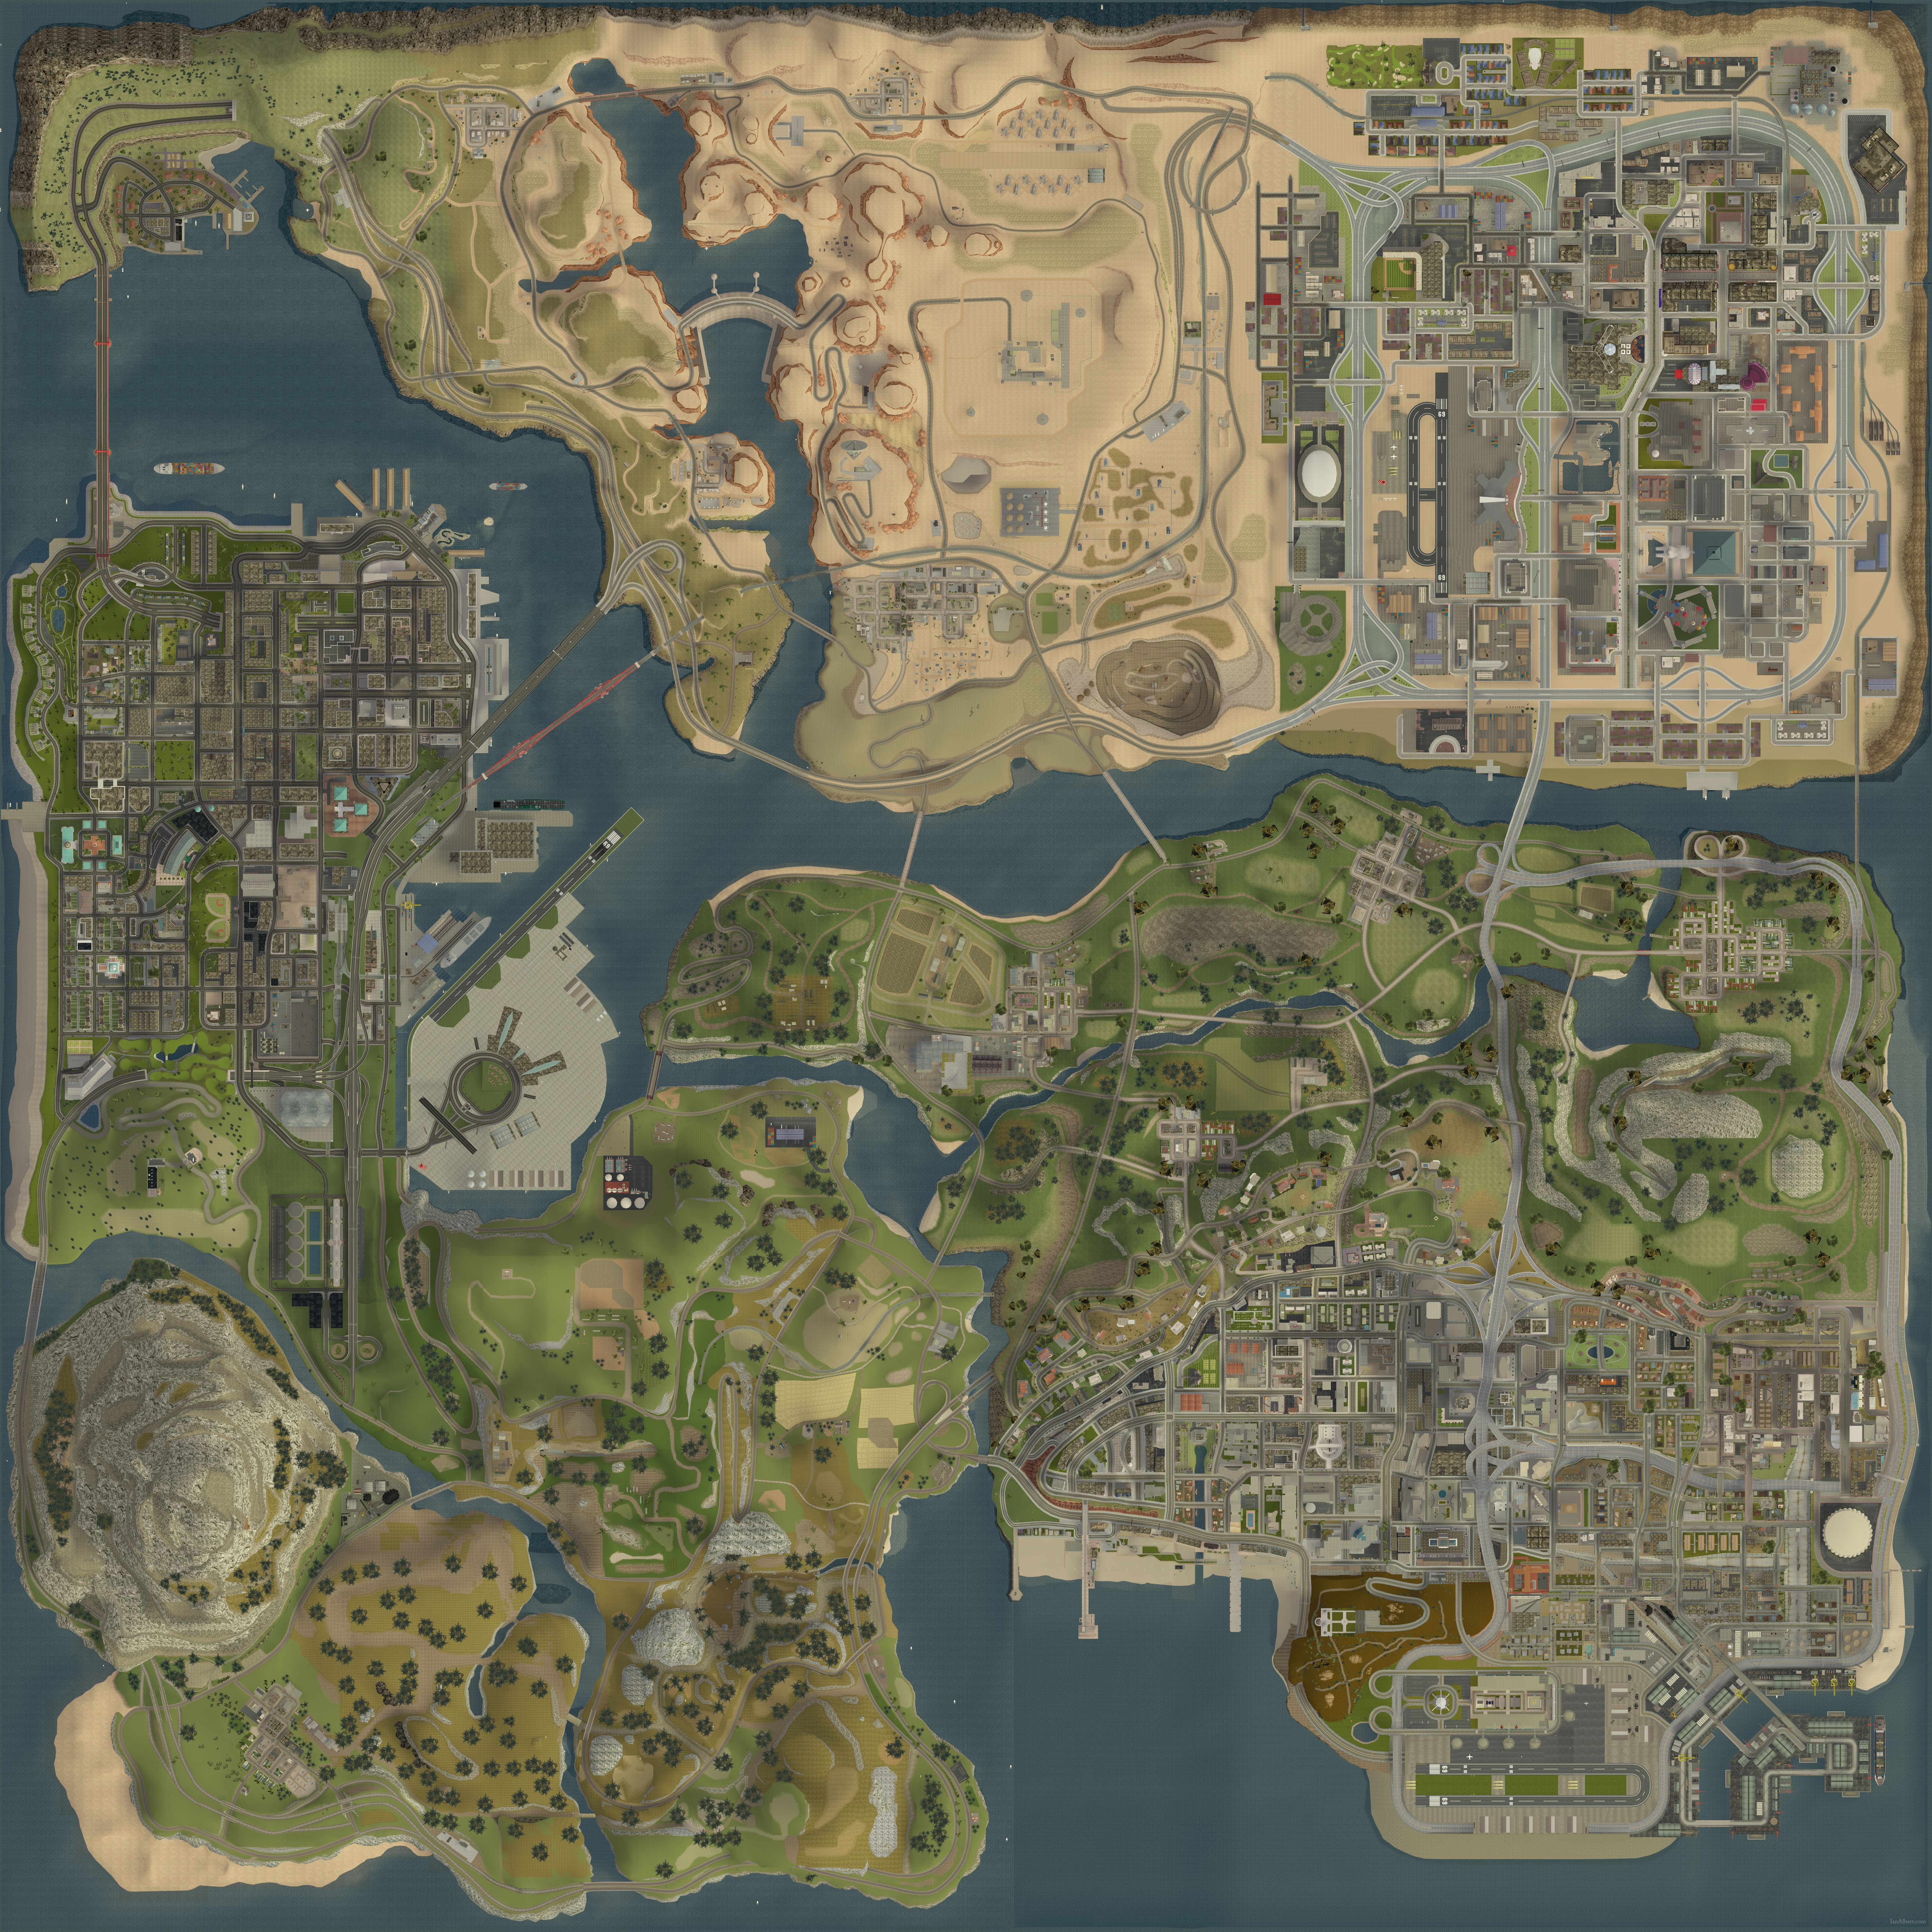 San Andreas Map State of San Andreas | GTA Wiki | FANDOM powered by Wikia San Andreas Map